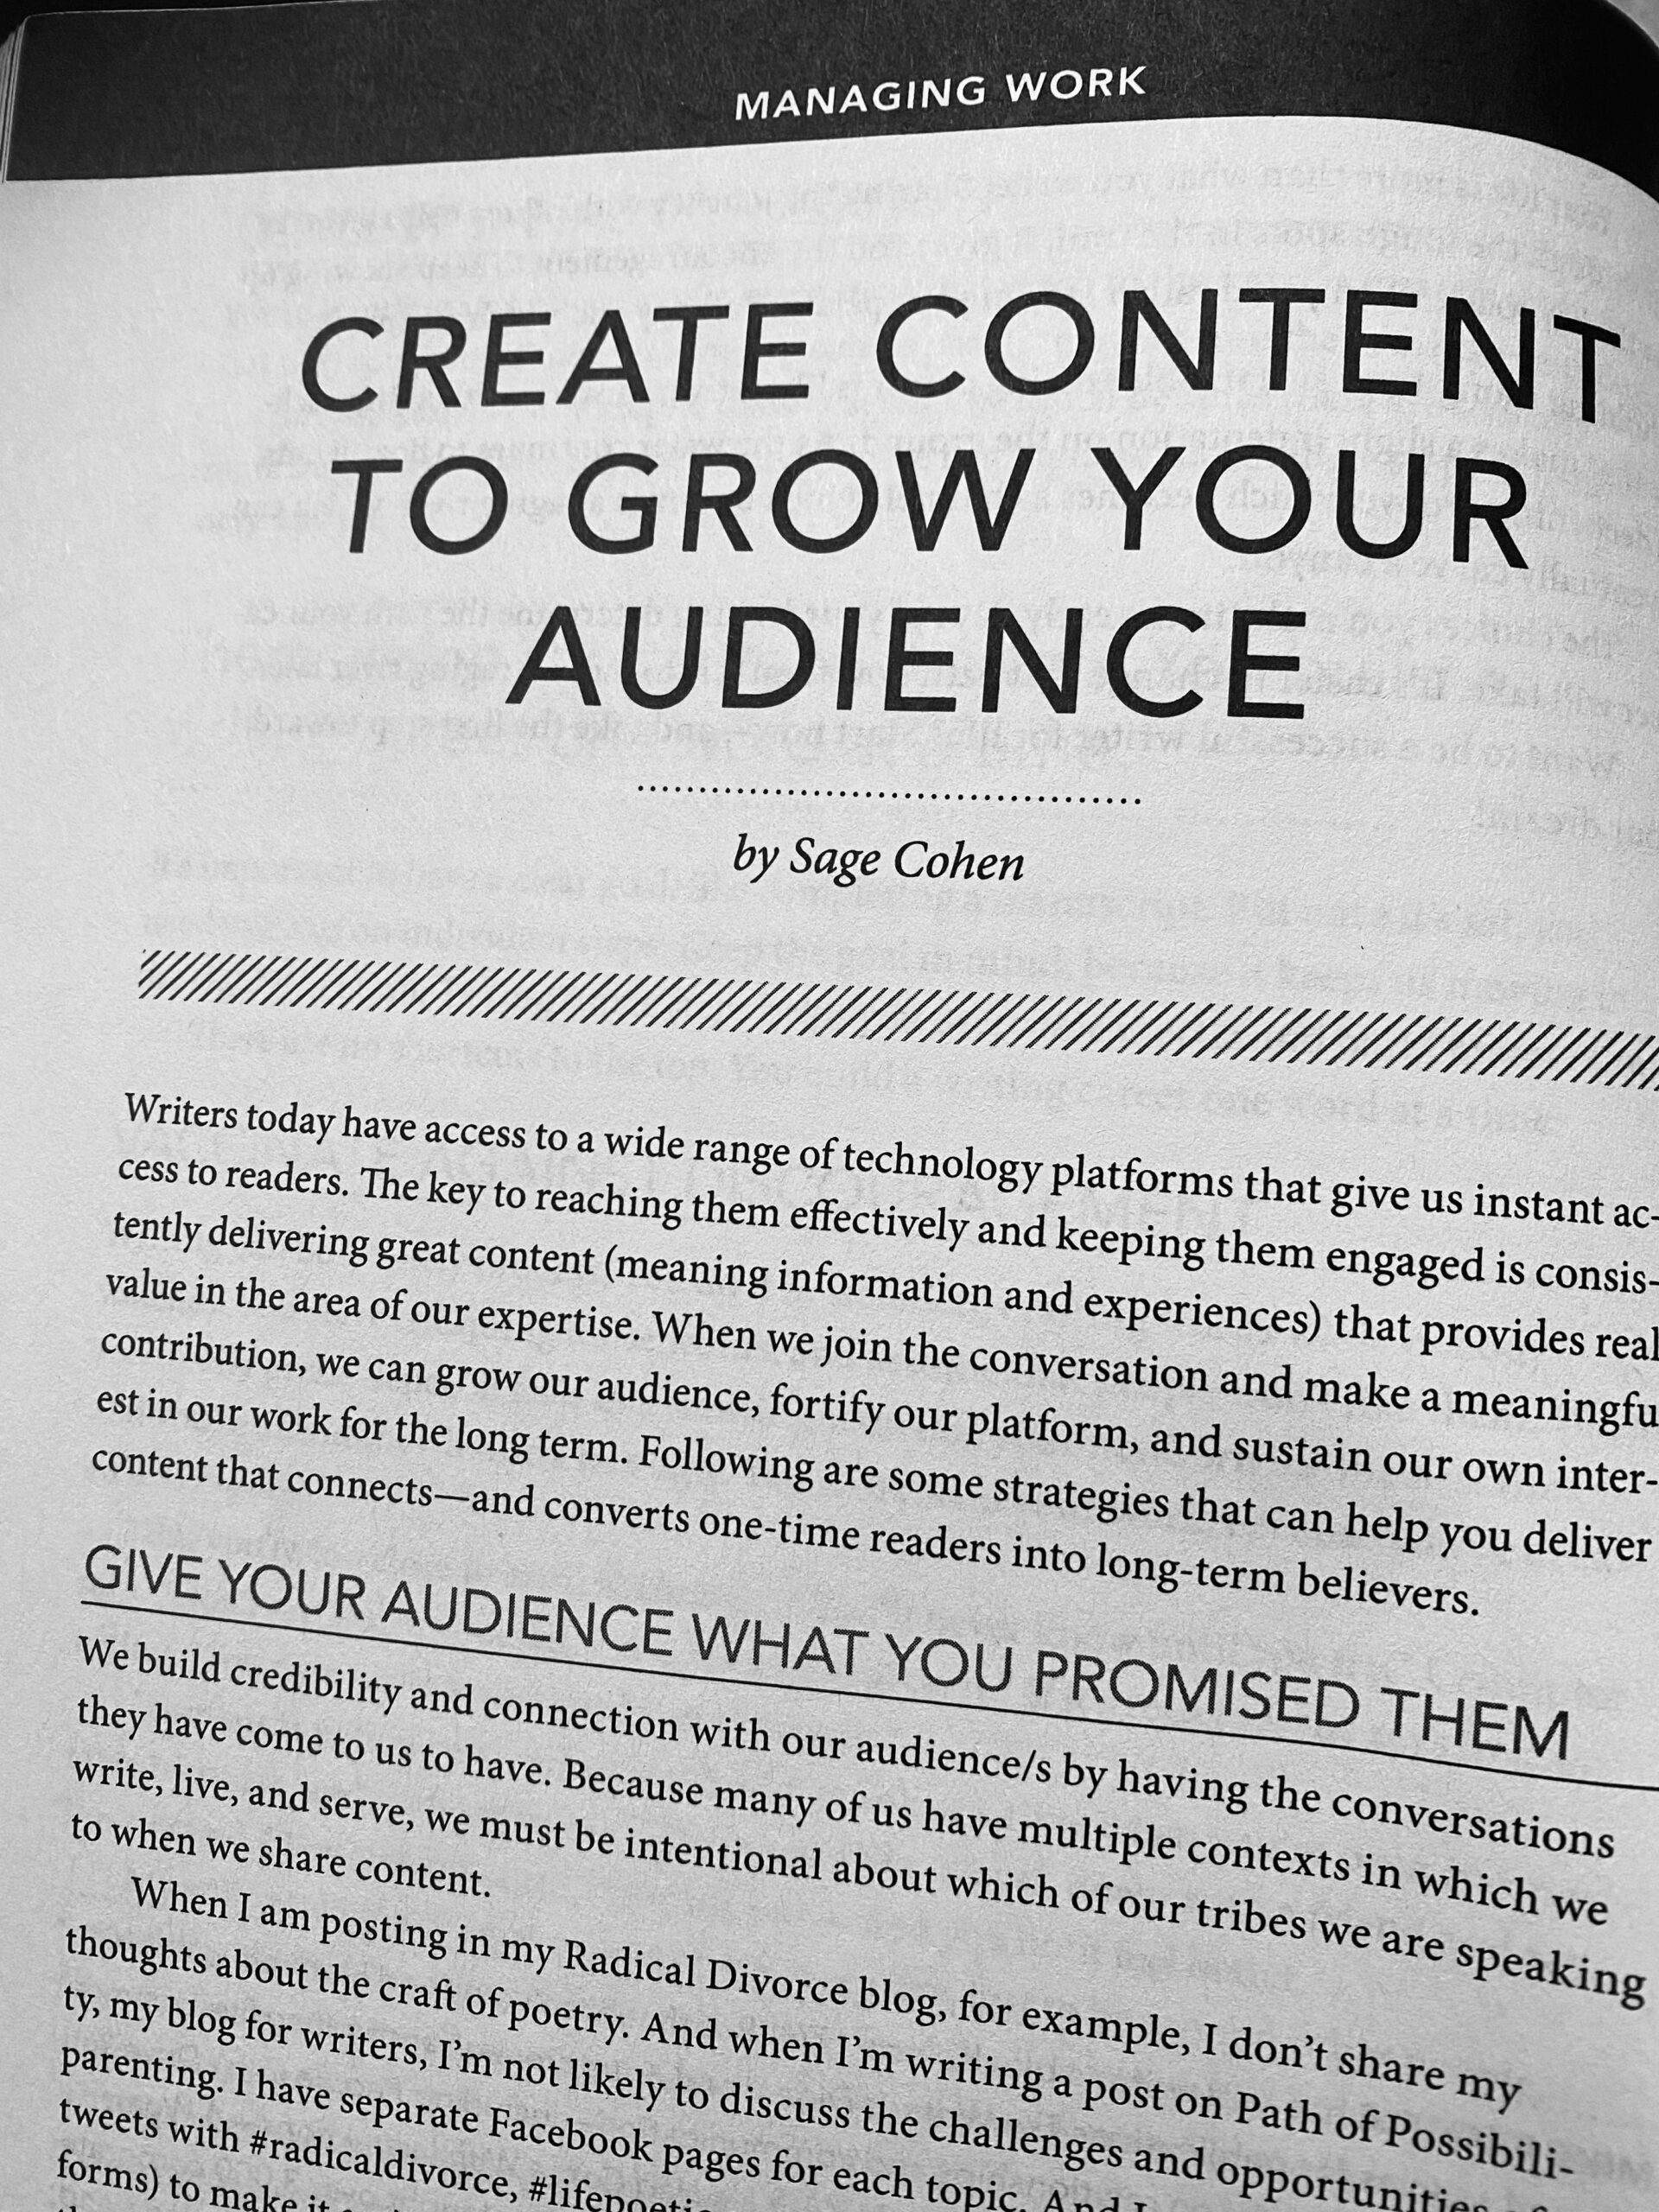 writing for a specific audience, writing tips, writing, books, reading, genres